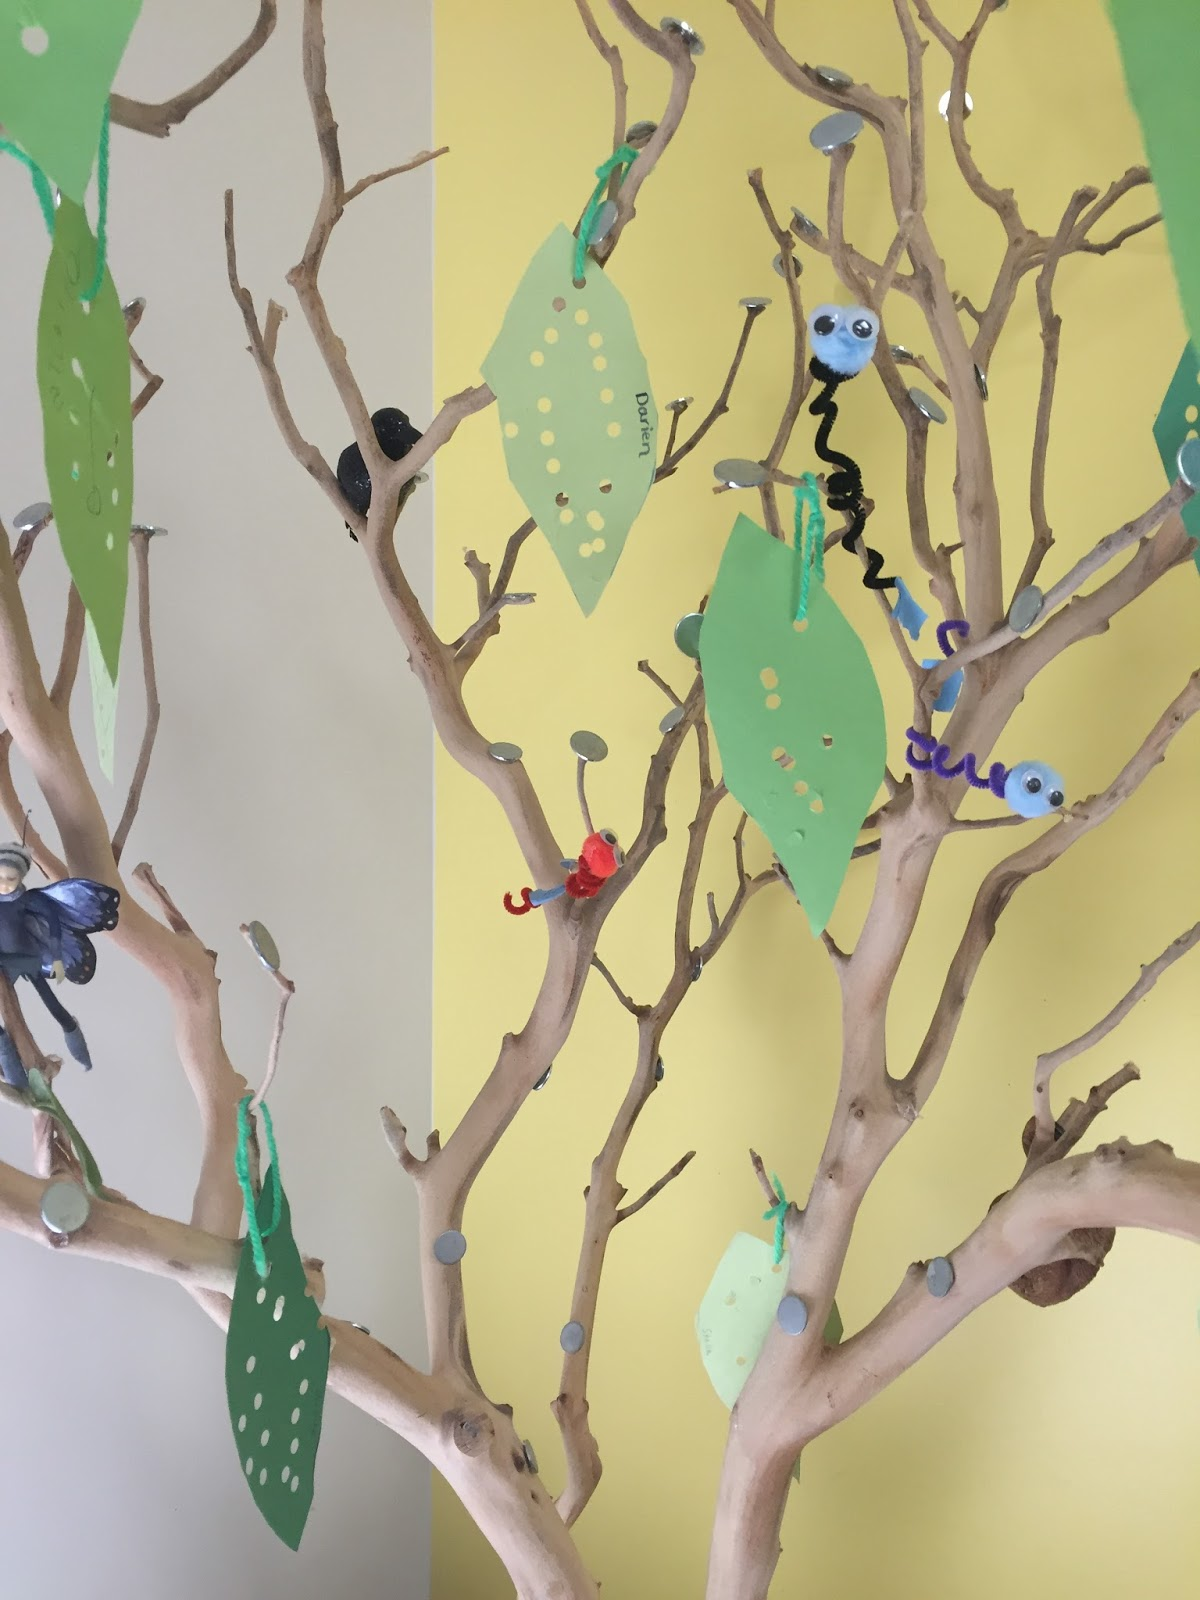 Playful Encounters with the Reggio Emilia Approach | Roots and Wings